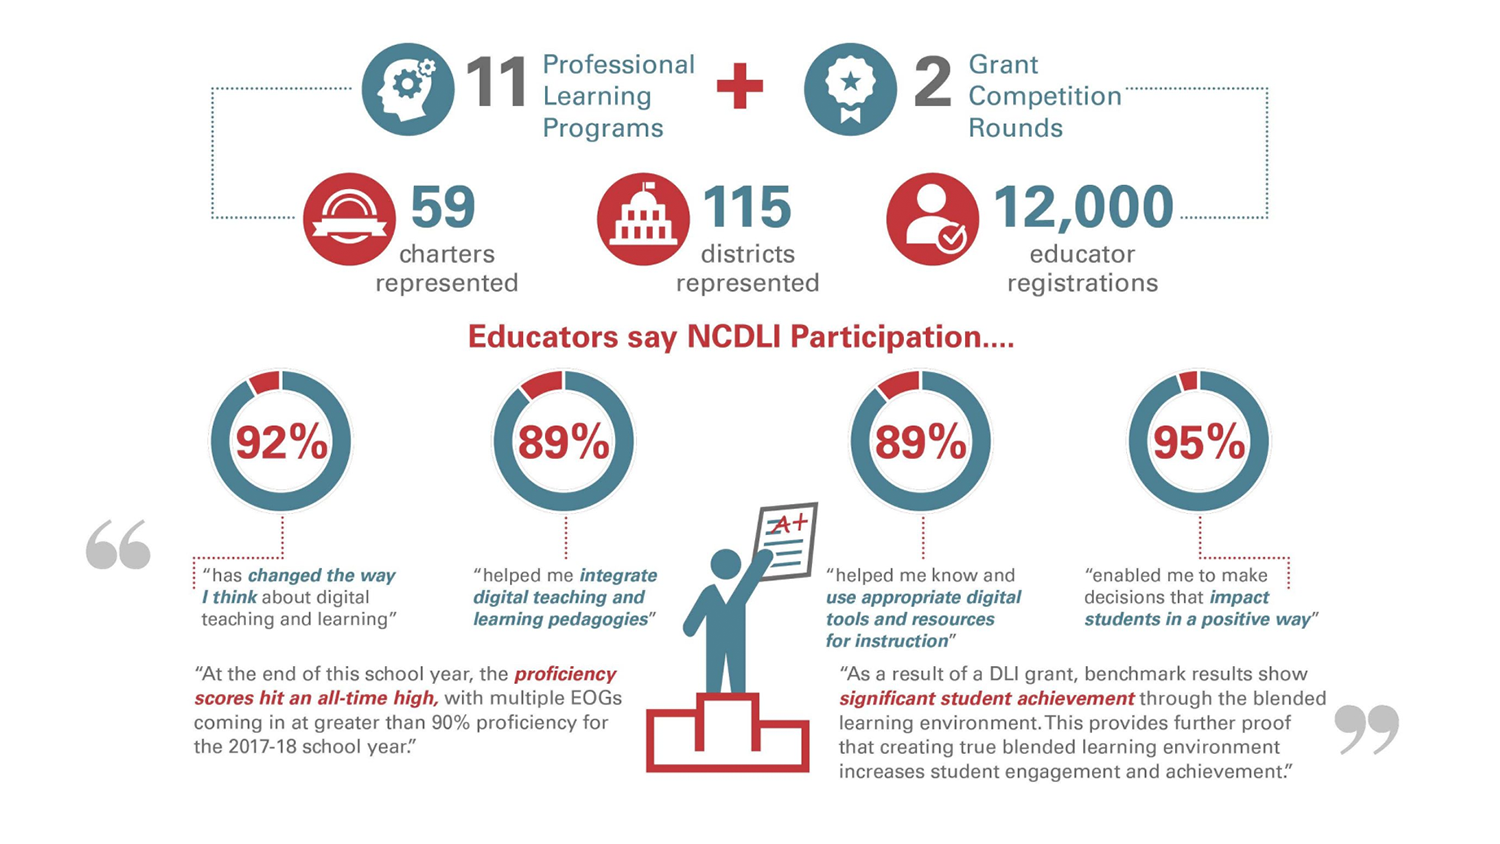 The collective impacts of NCDLI efforts on teaching and learning